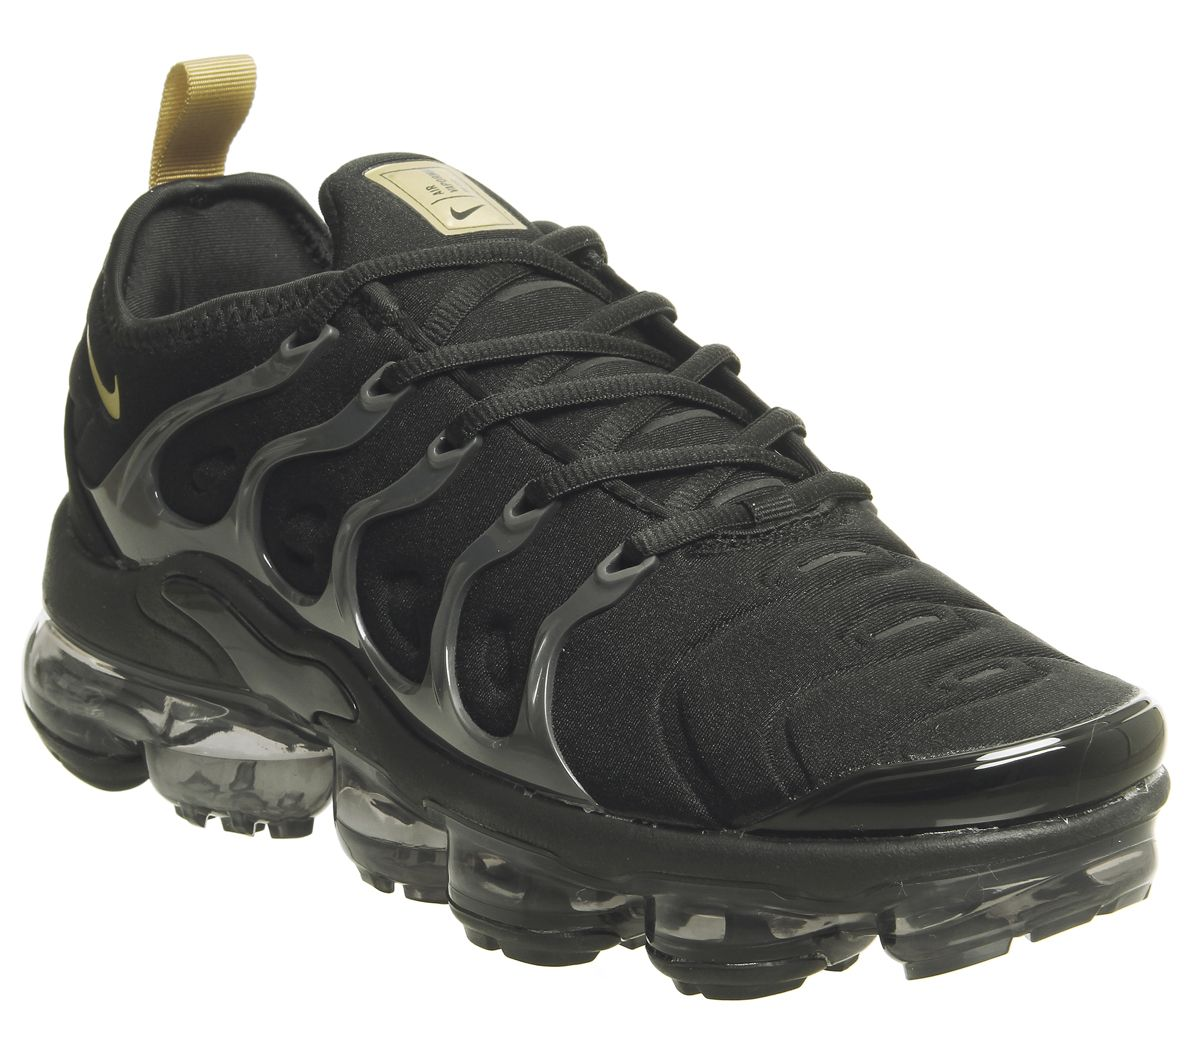 ae9459c7dff Nike Vapormax Air Vapormax Plus Trainers Black Metallic Gold - His ...